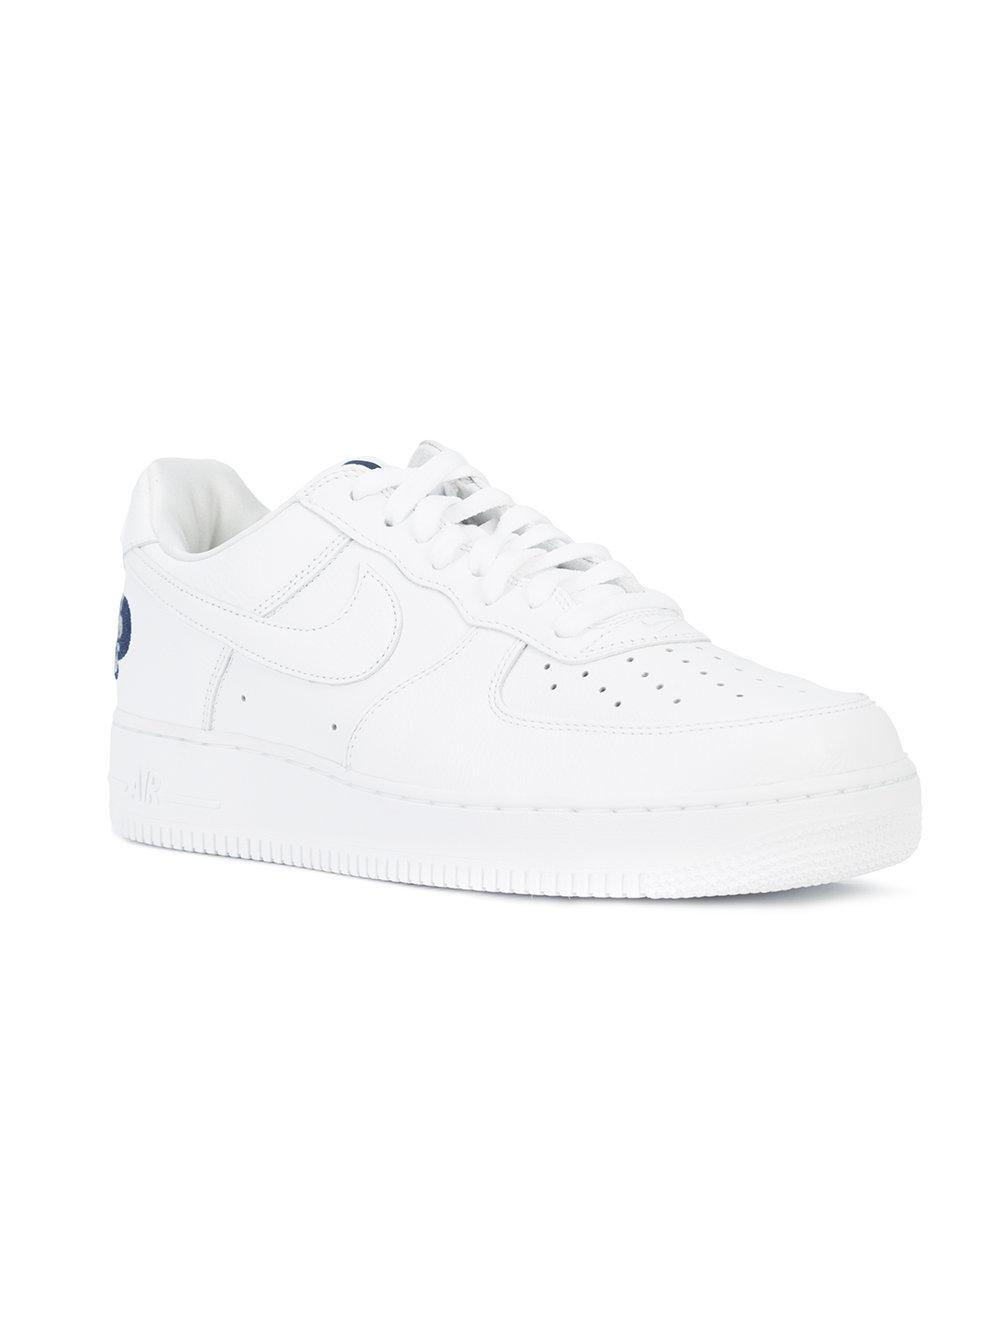 43aa11c947c Nike - White Air Force One Sneakers for Men - Lyst. View fullscreen